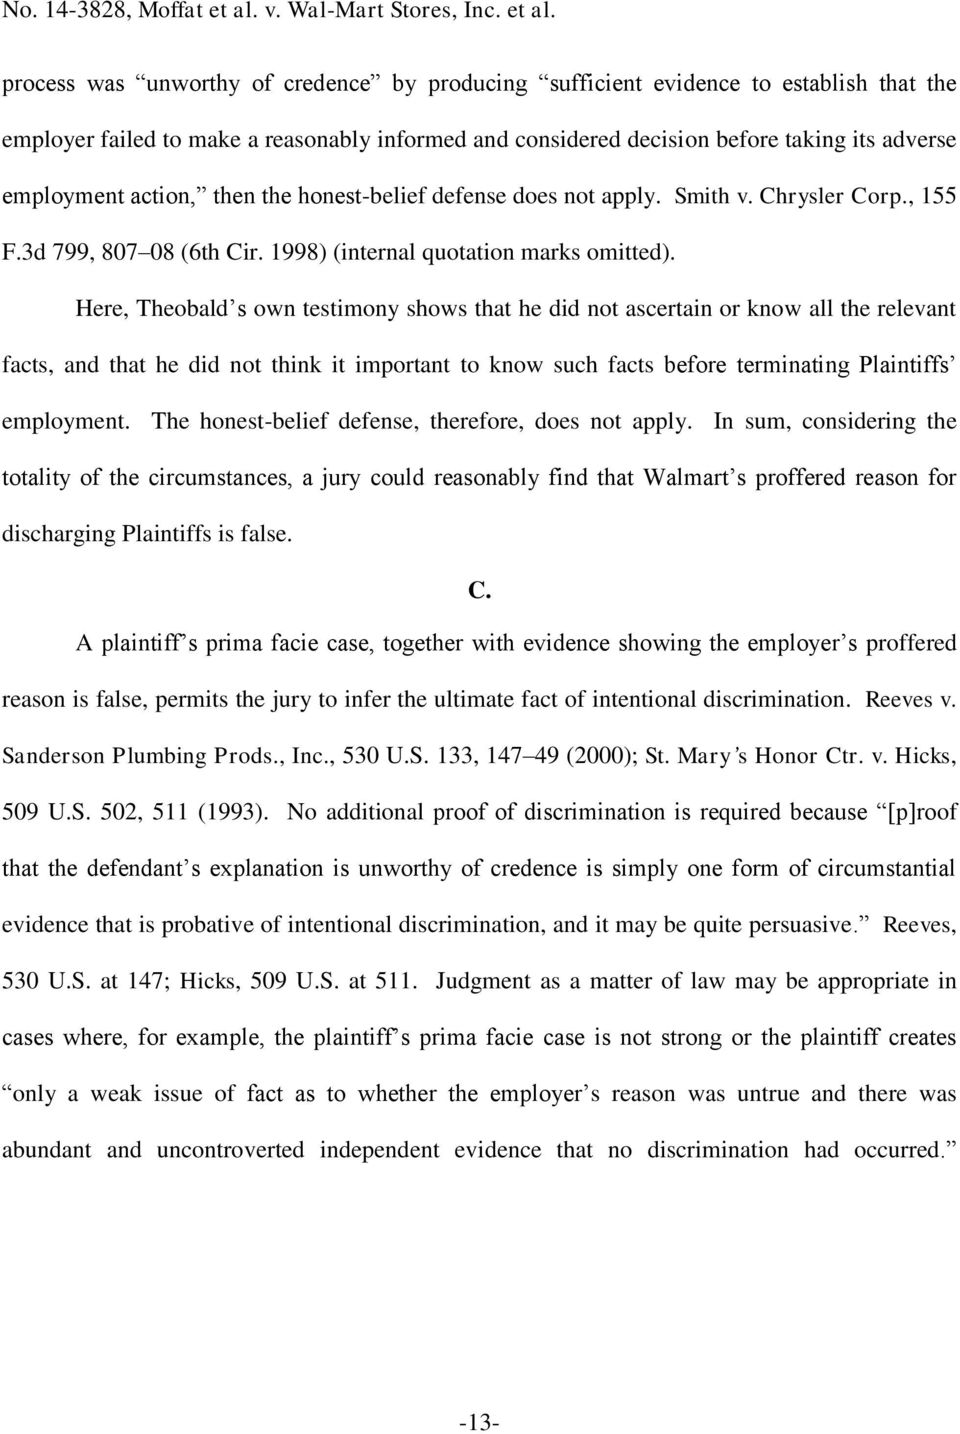 Here, Theobald s own testimony shows that he did not ascertain or know all the relevant facts, and that he did not think it important to know such facts before terminating Plaintiffs employment.